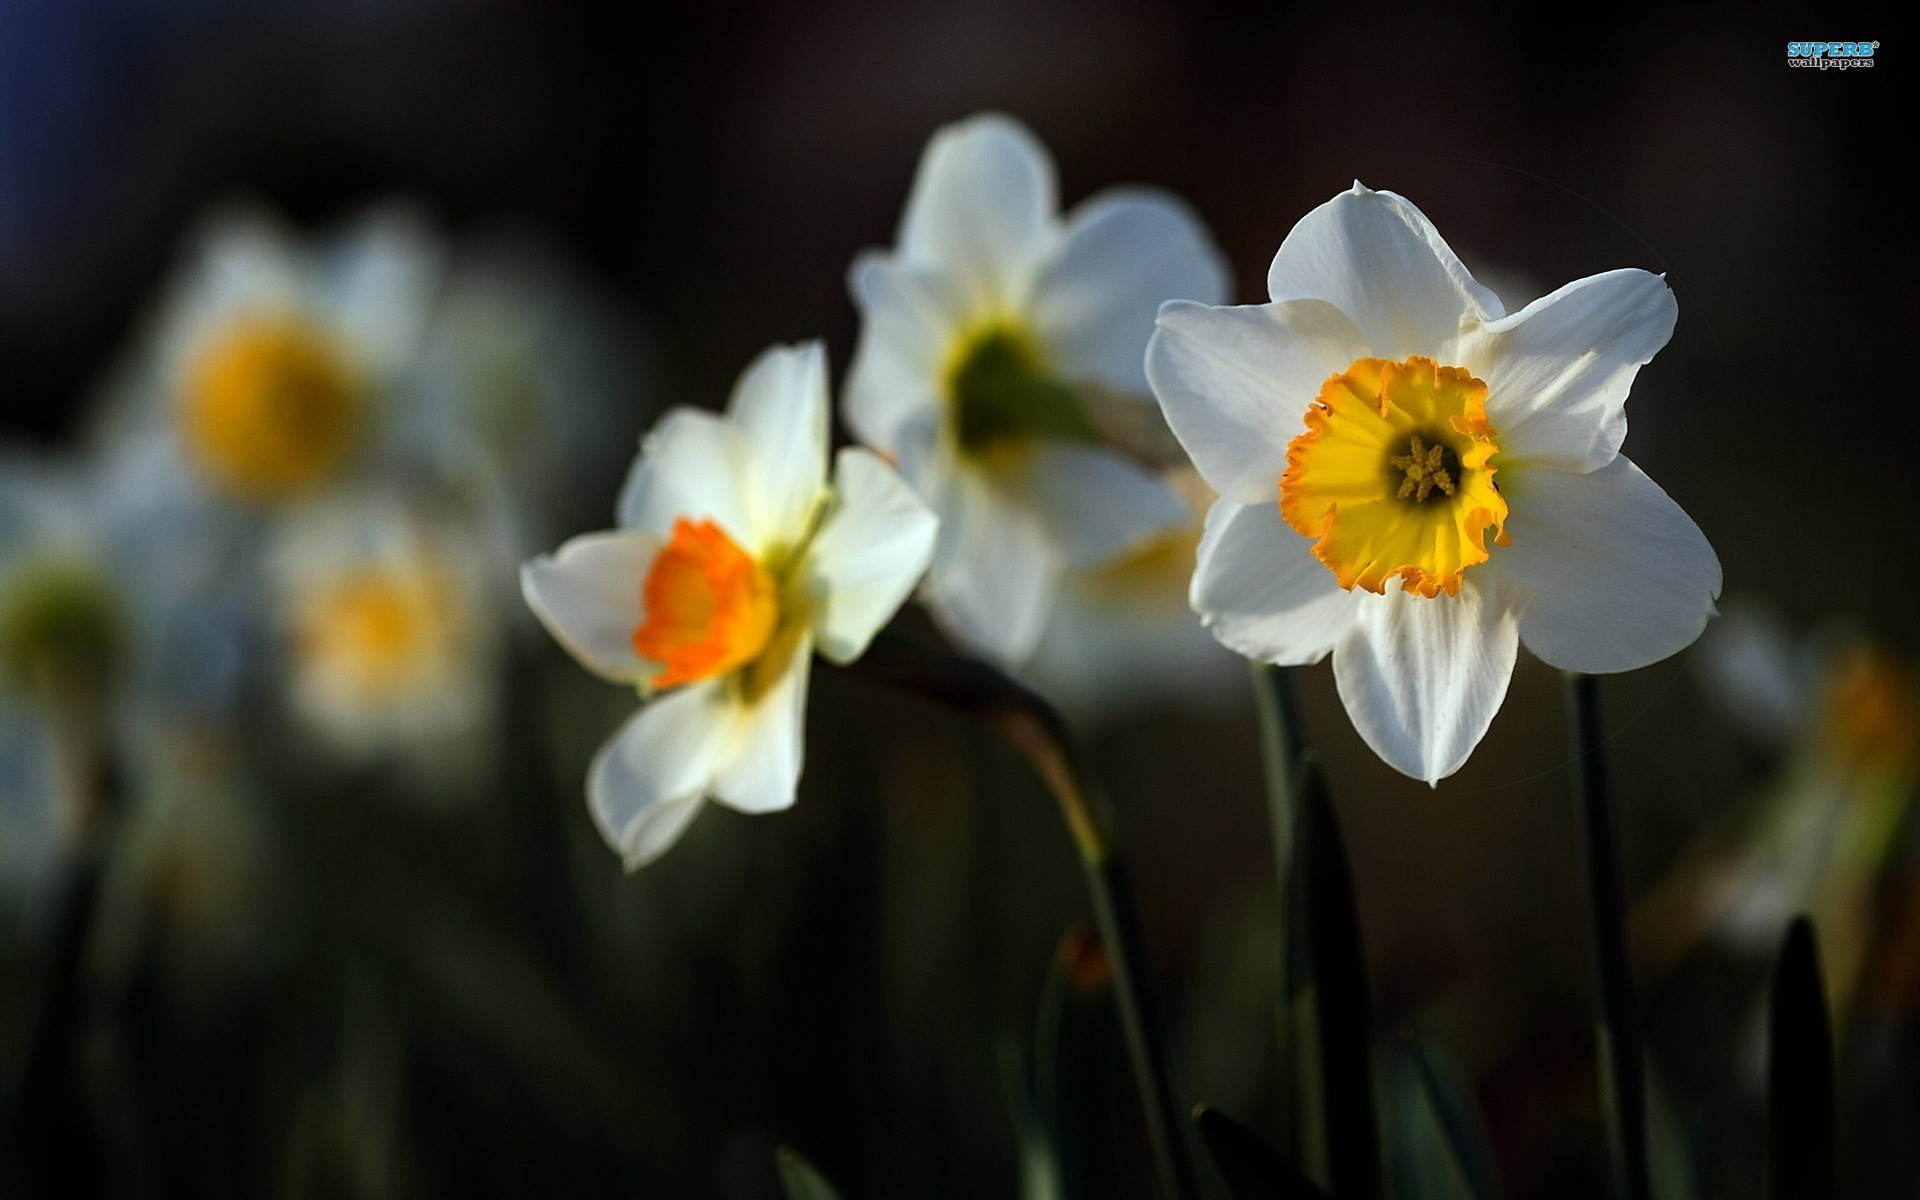 Pictures of Pretty Daffodil HD, 1920x1200 px, July 4, 2014